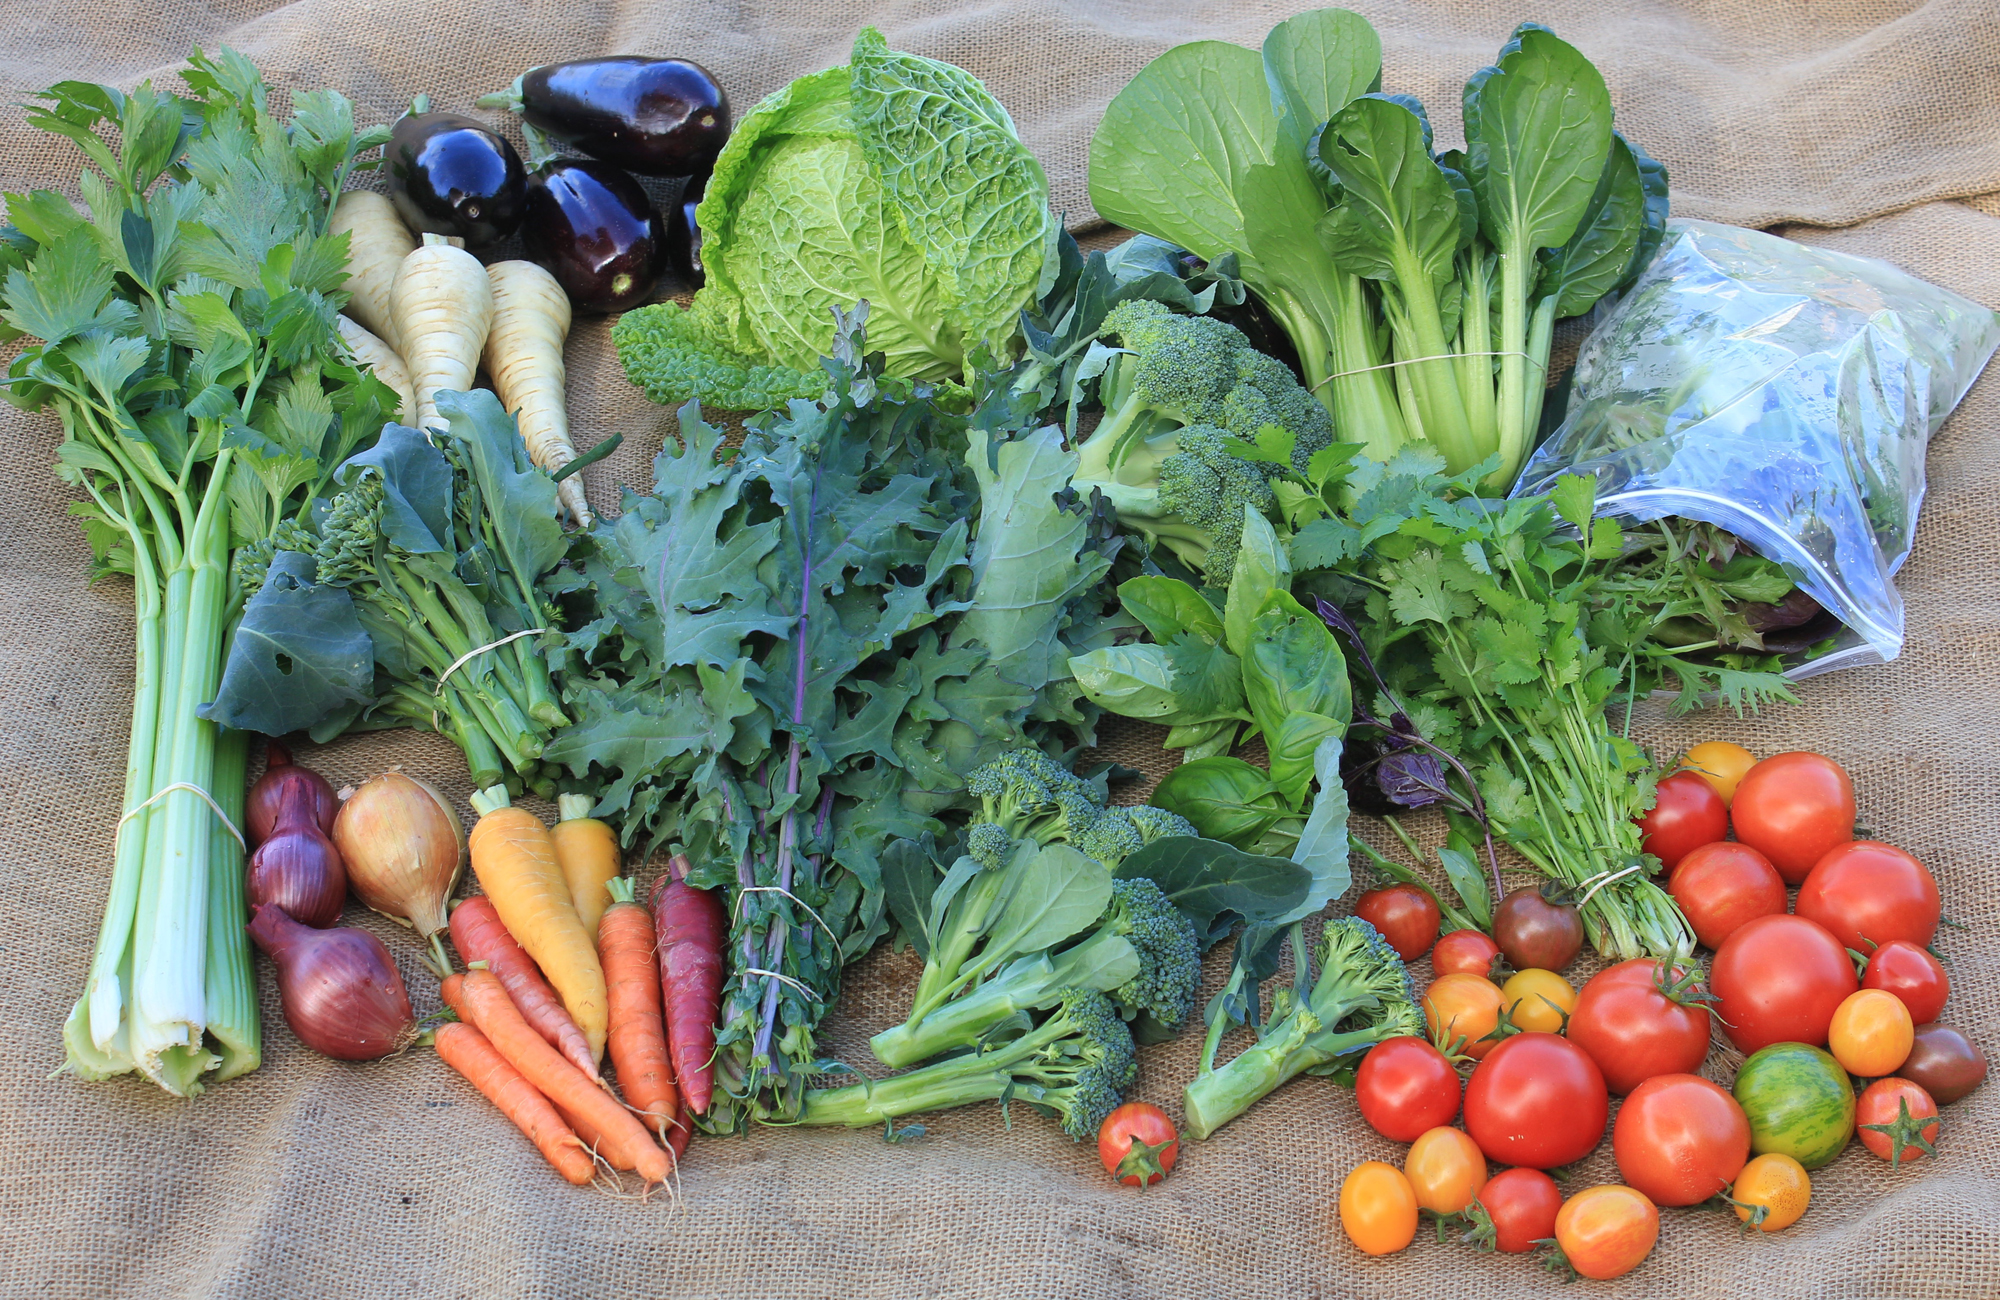 Large Veggie Box from May 2018: celery, parsnips, eggplant, savoy cabbage, broccoli, bok choi, salad mix, parsley, basil, tomatoes, broccolini, kale, carrots, red and brown onions.